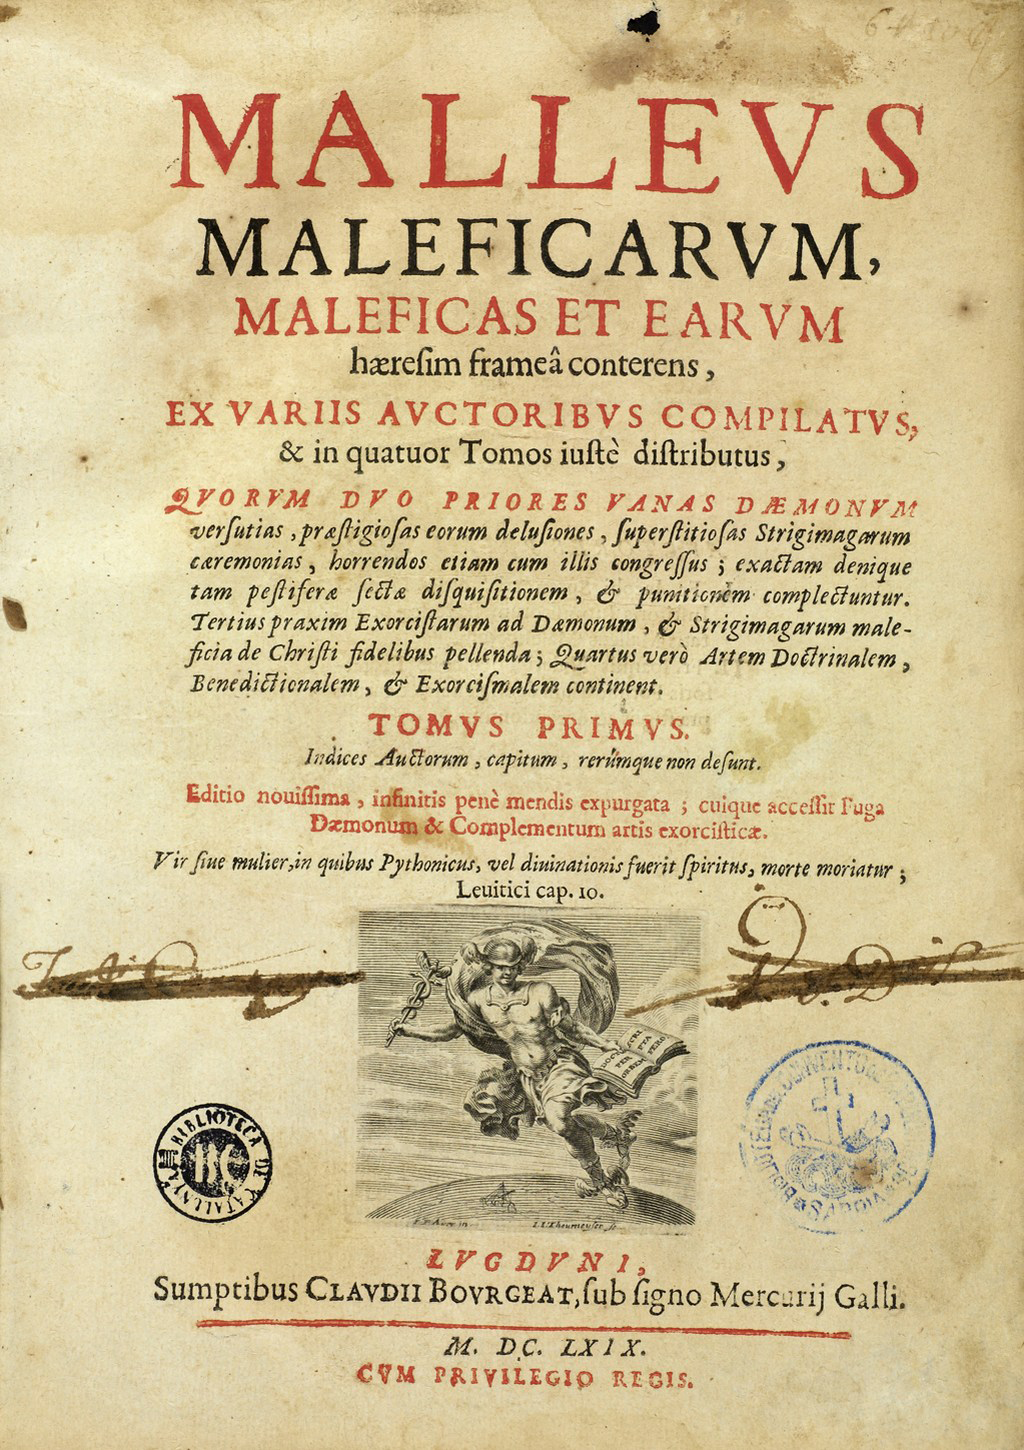 Title page of the Malleus Maleficarum (Hammer of Witches), the main treatise on witchcraft © http://wellcomeimages.org/indexplus/obf_images/9b/44/a3099ffc223cb9f244846af2909a.jpg